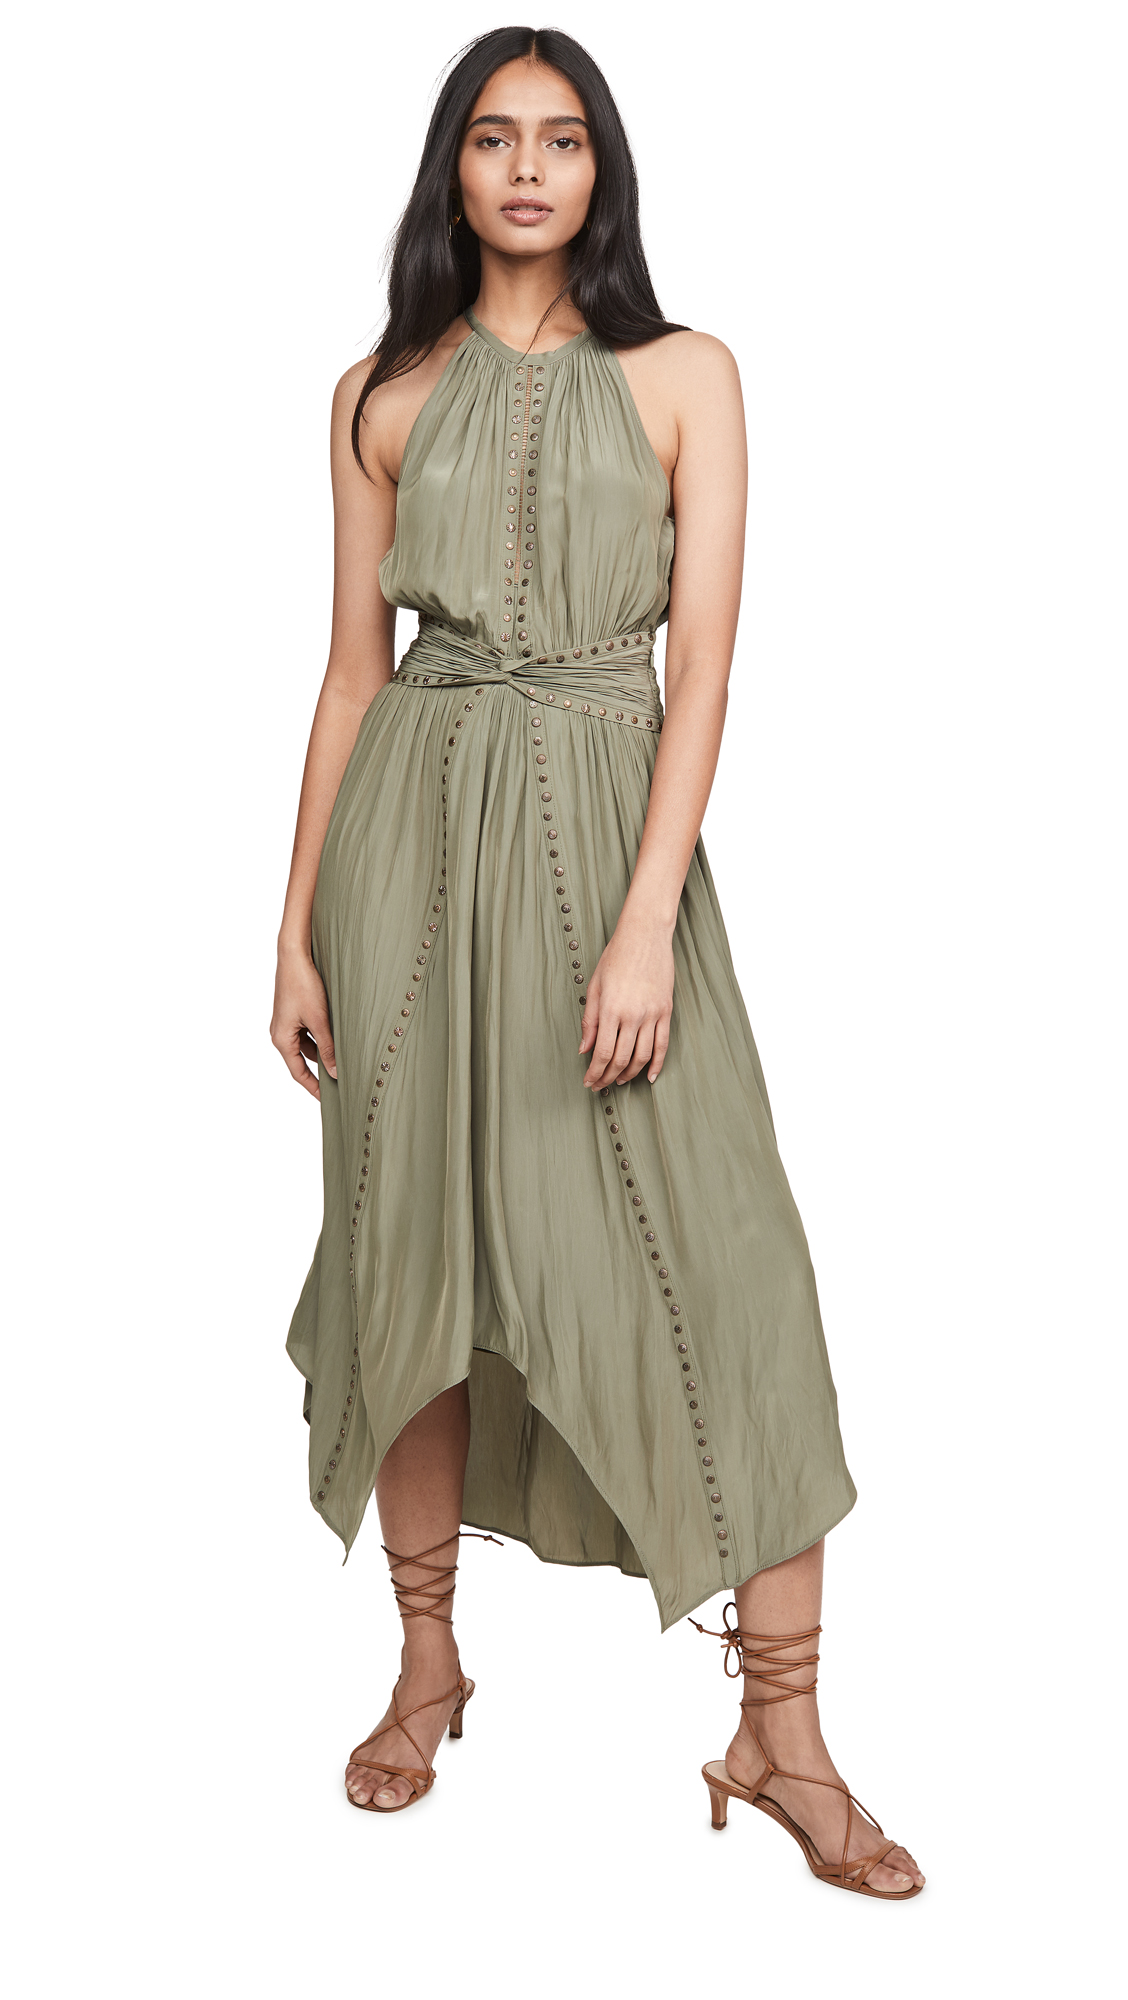 Ramy Brook Mel Dress - 30% Off Sale